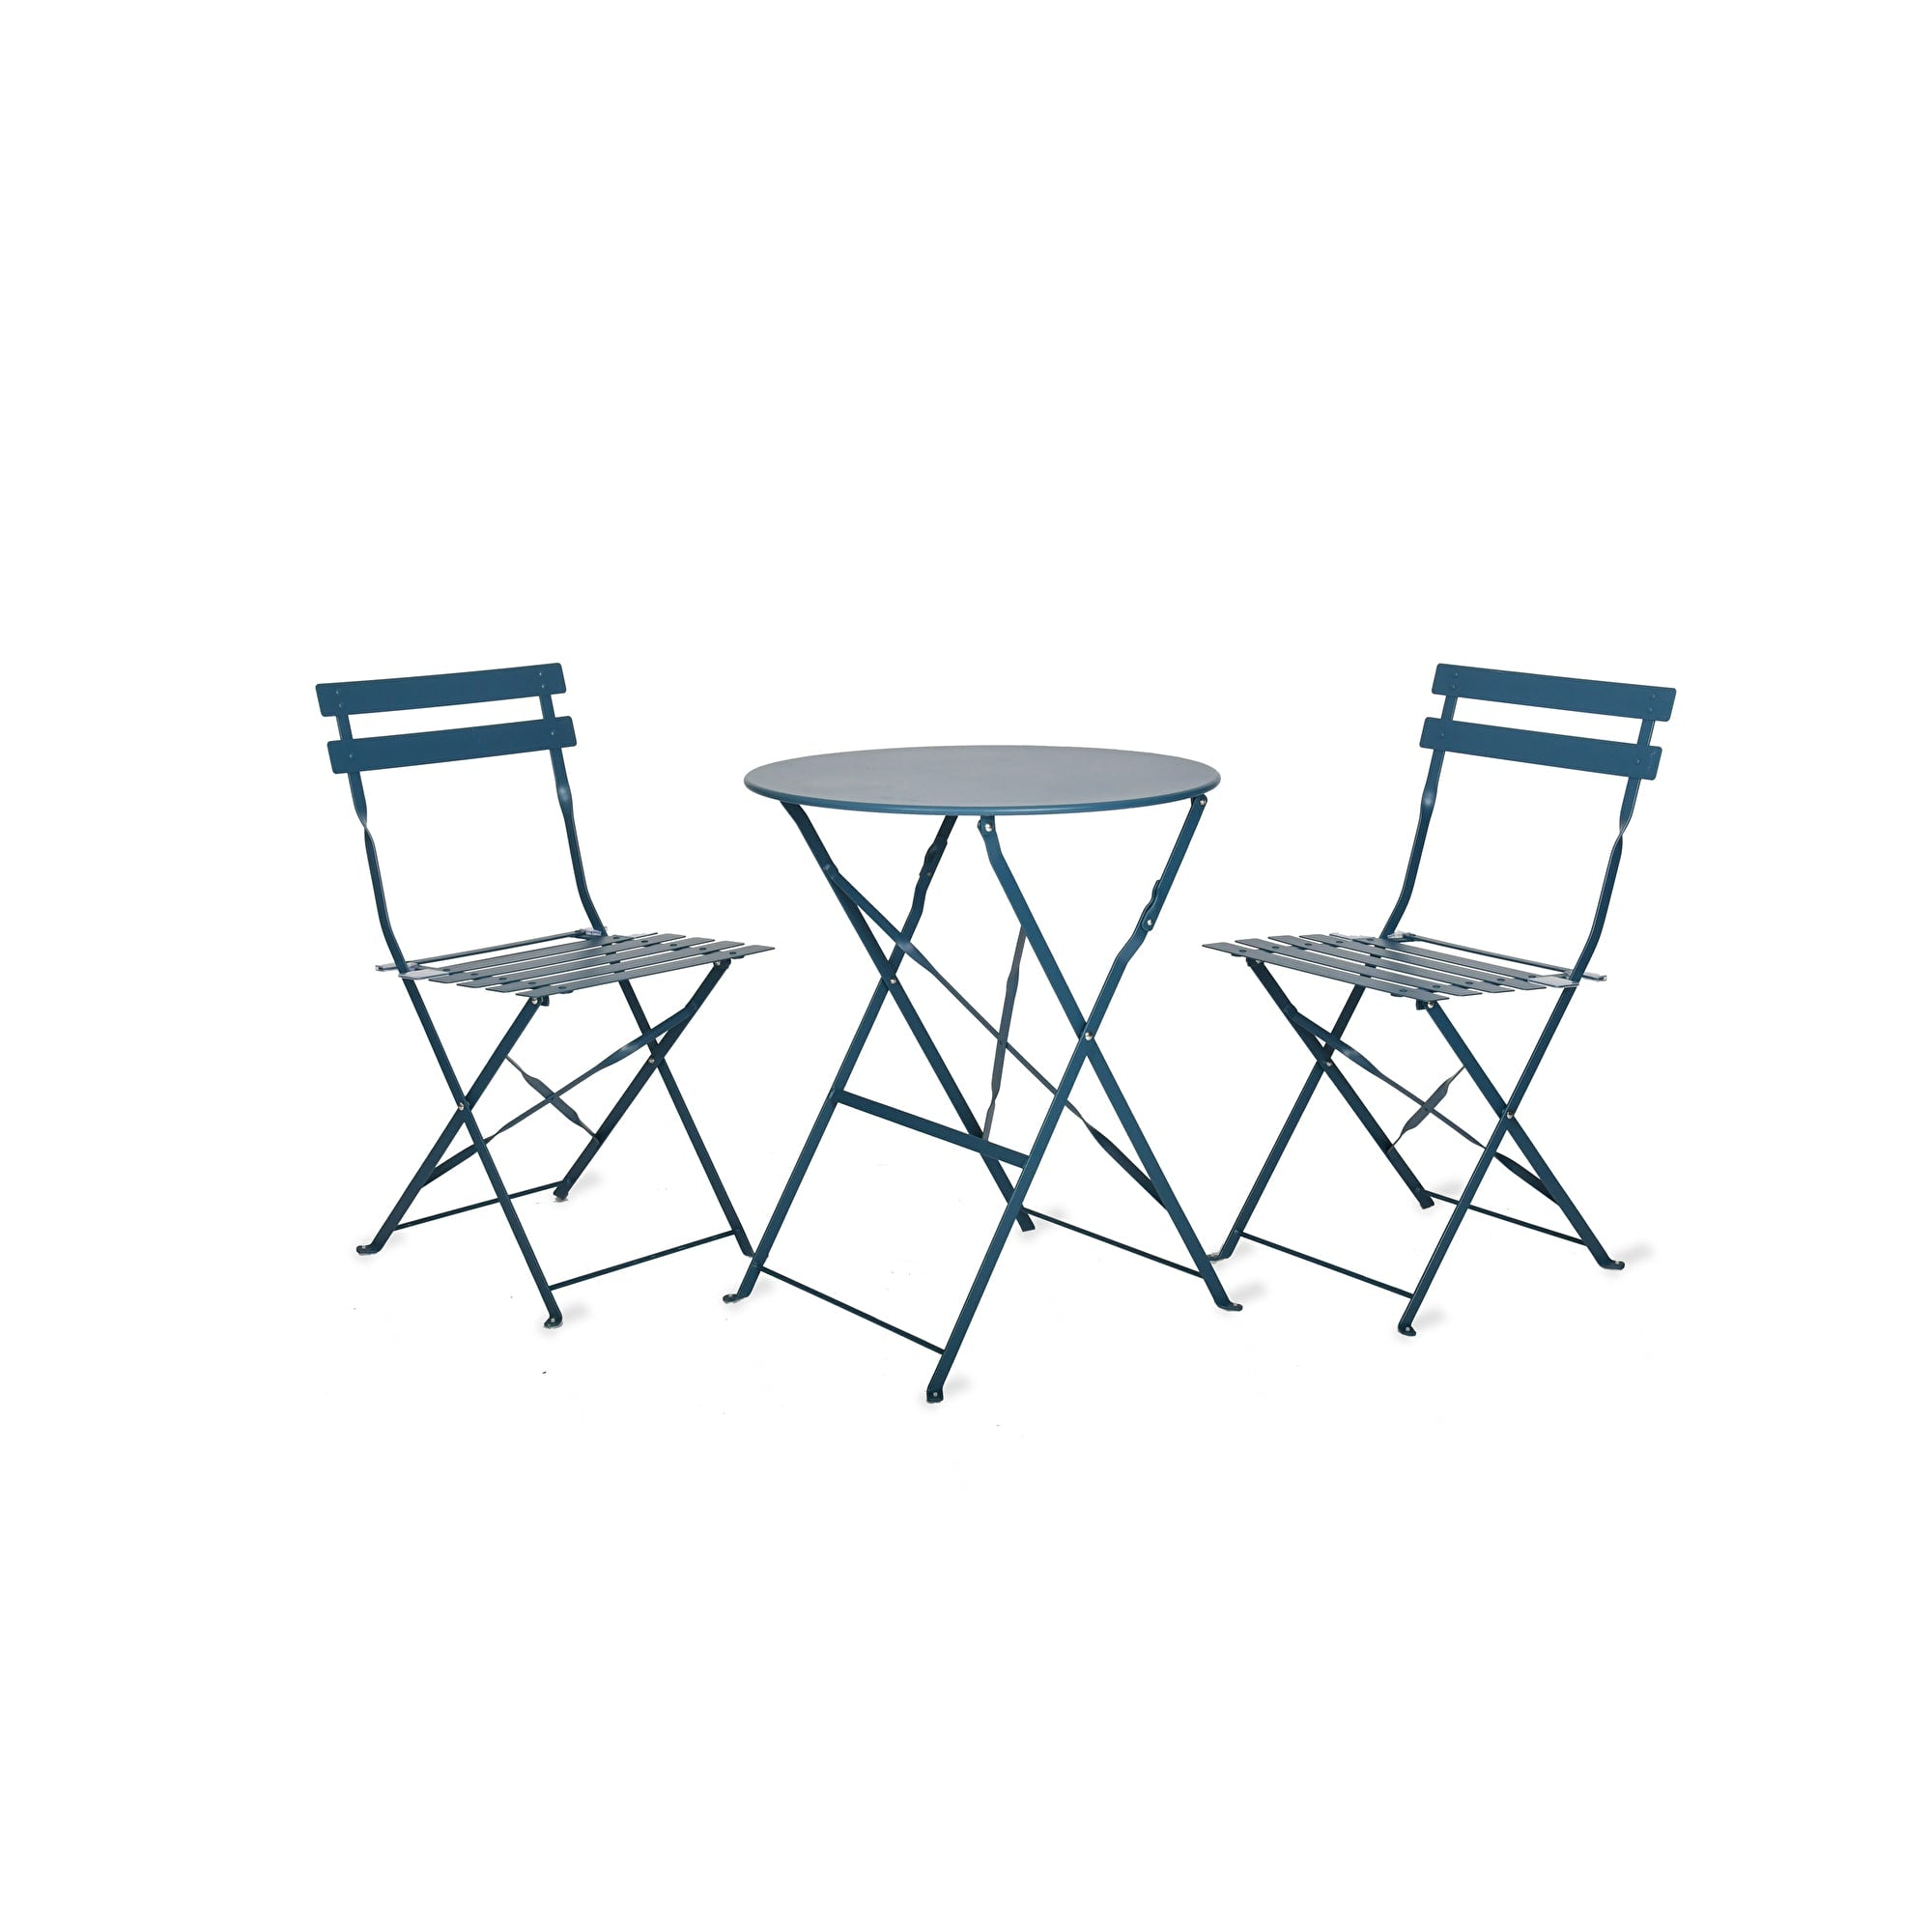 Seine Small Bistro Set in Teal